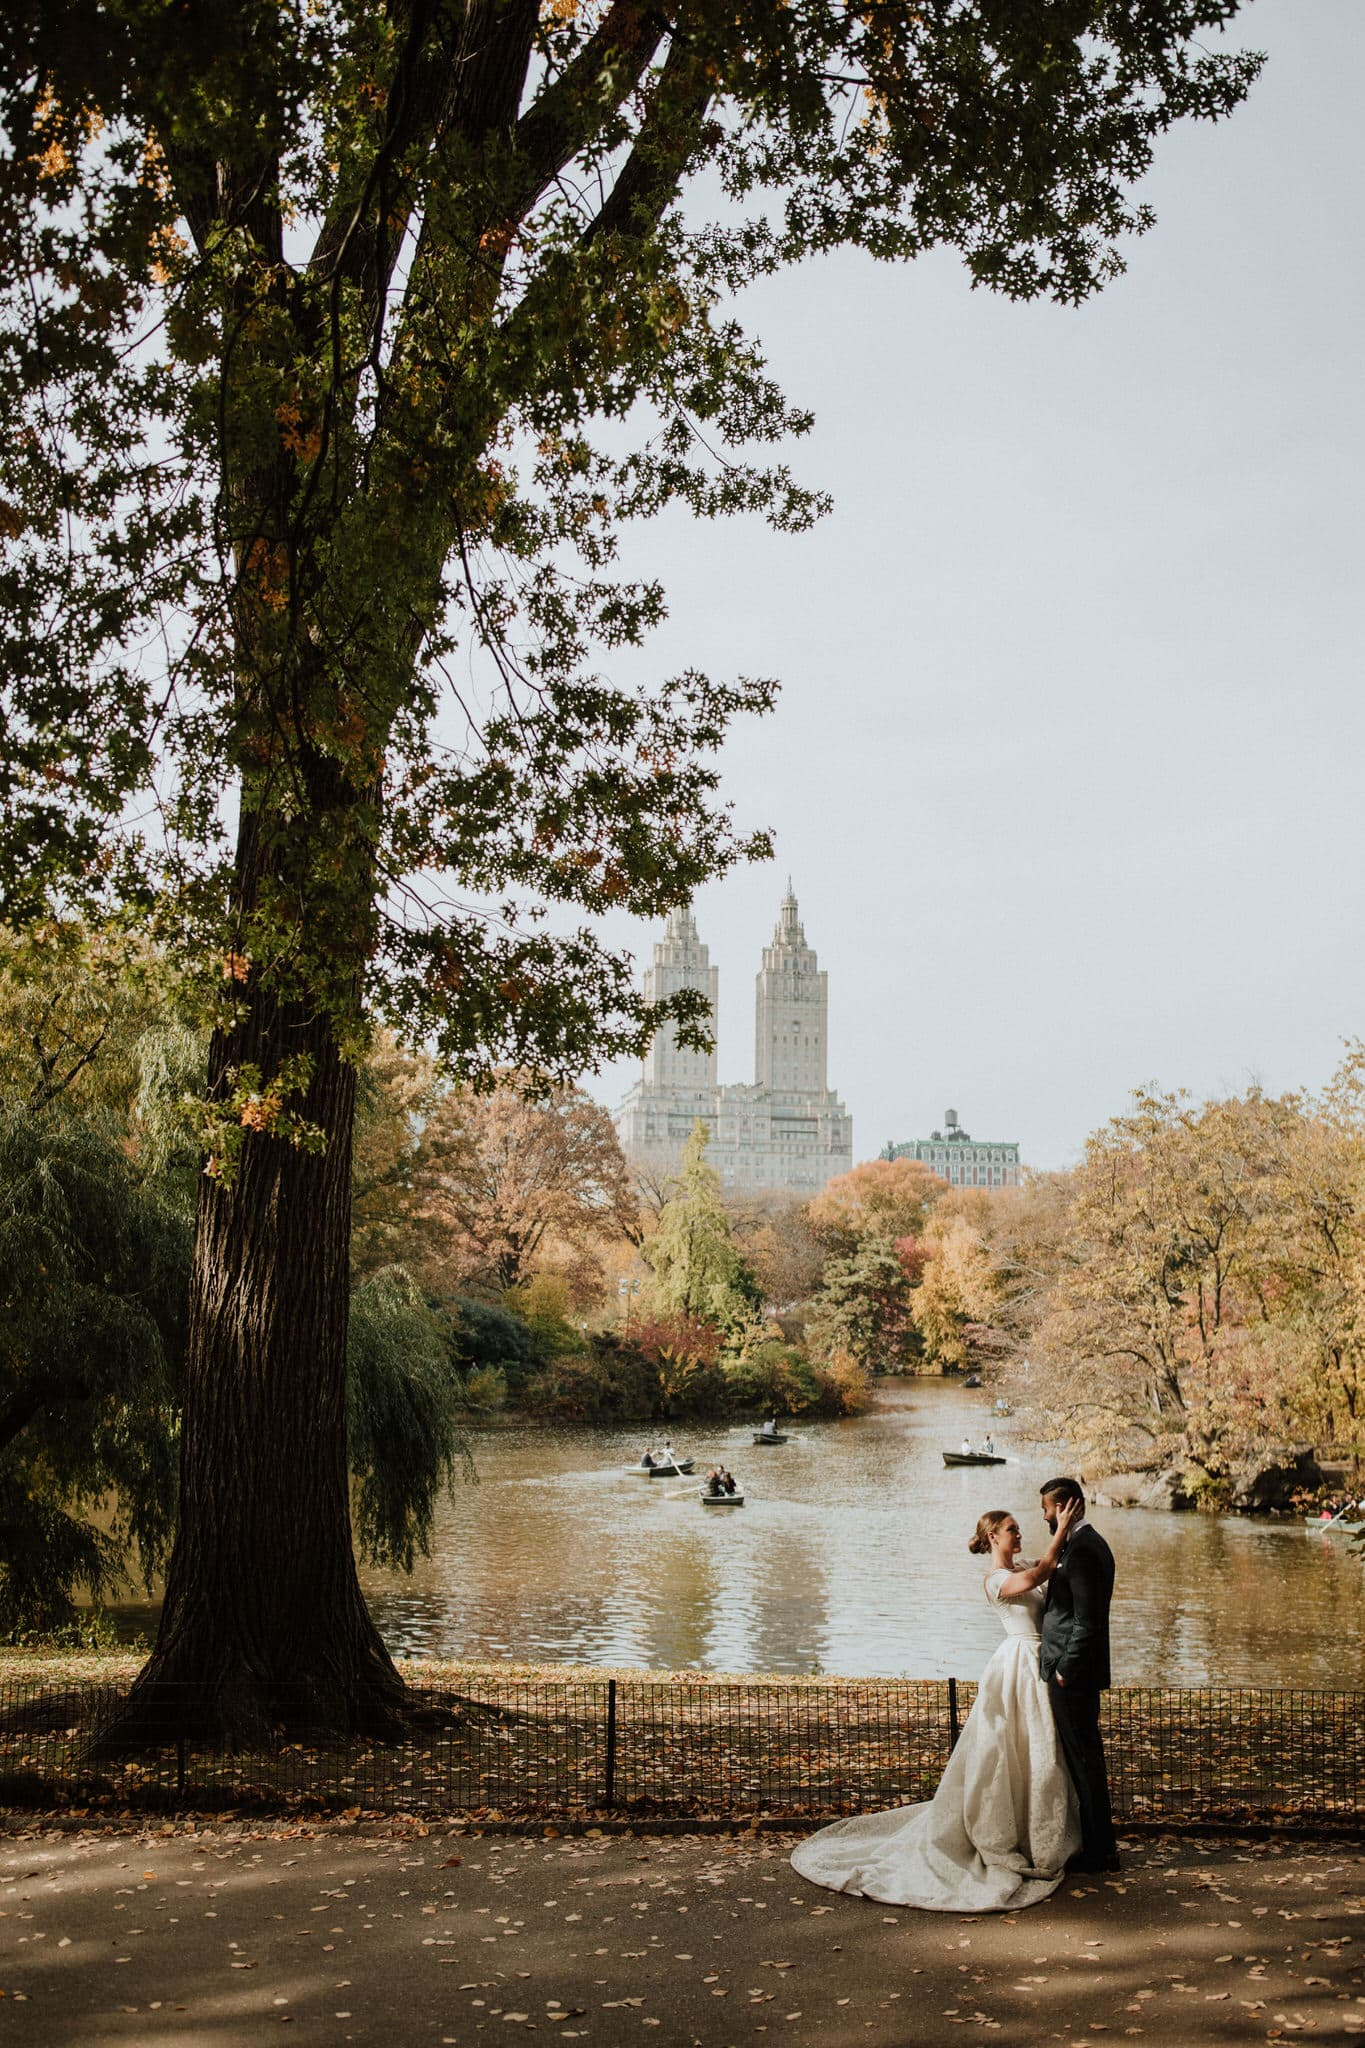 The bride and groom near the lake in Central Park, overlooking Manhatten, New York. Wedding Photographer Brent Calis.